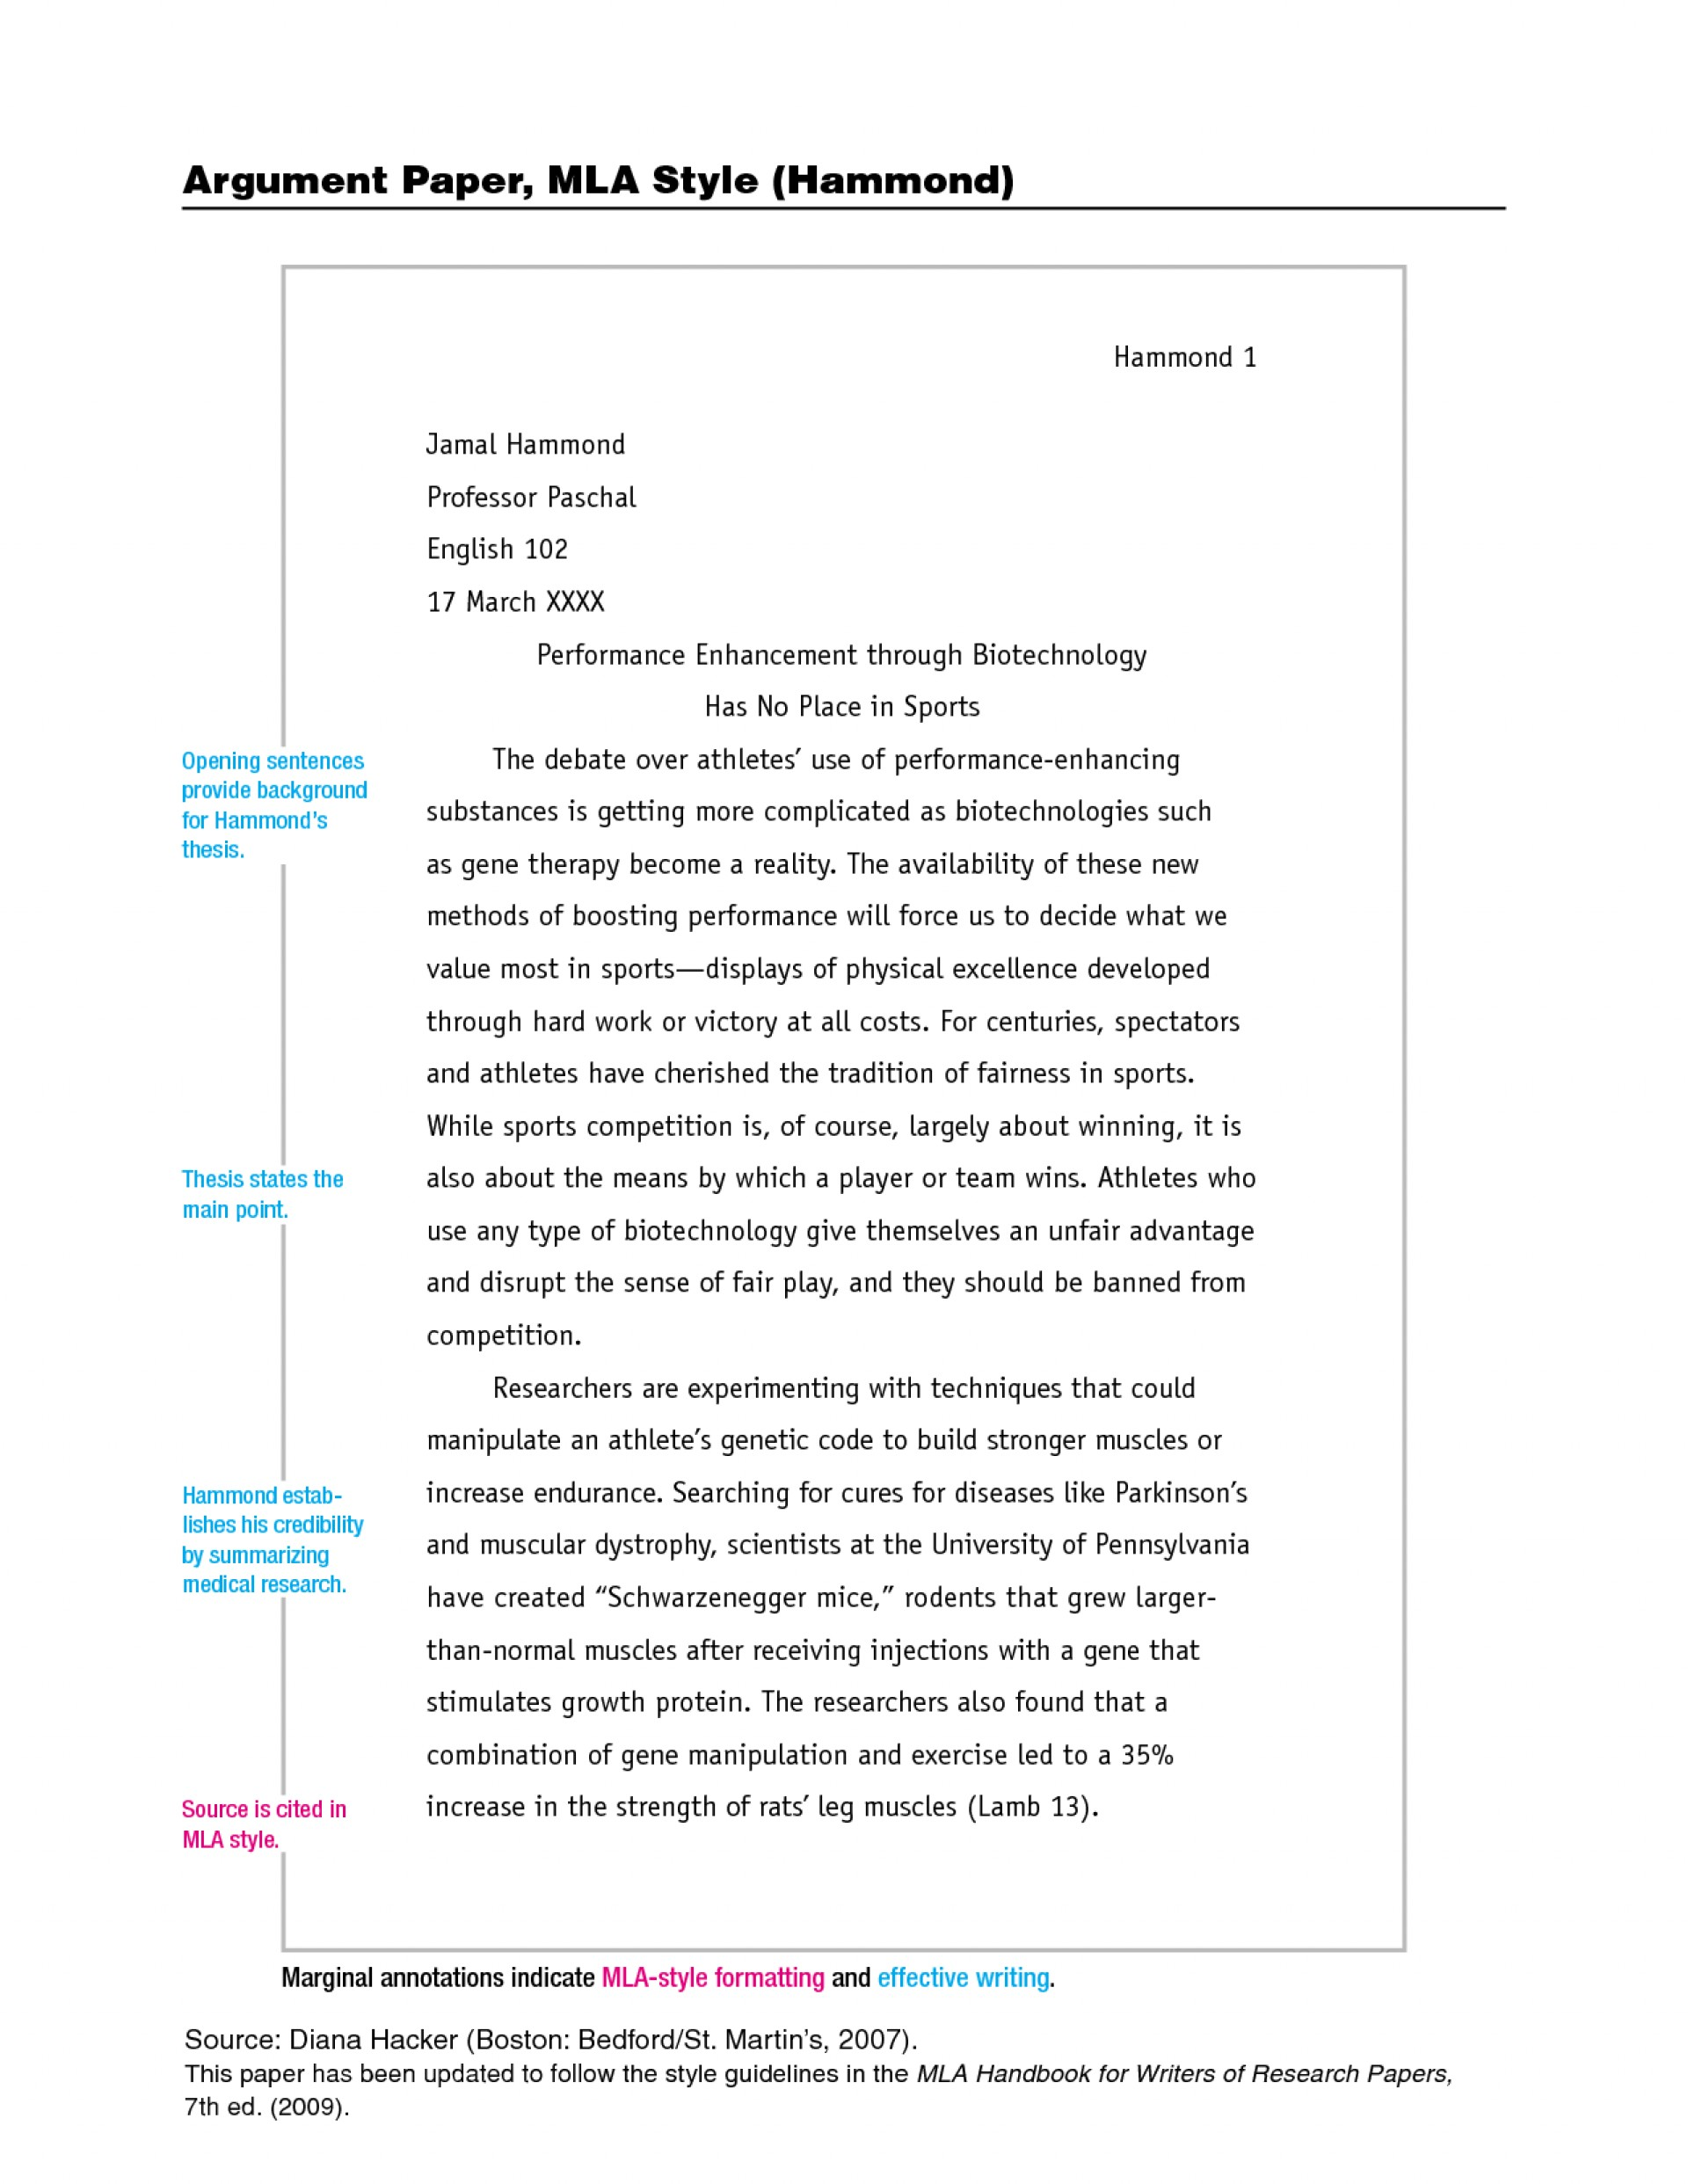 003 Chicago Style Essay Format Unforgettable Sample Template Paper Cover Page 1920